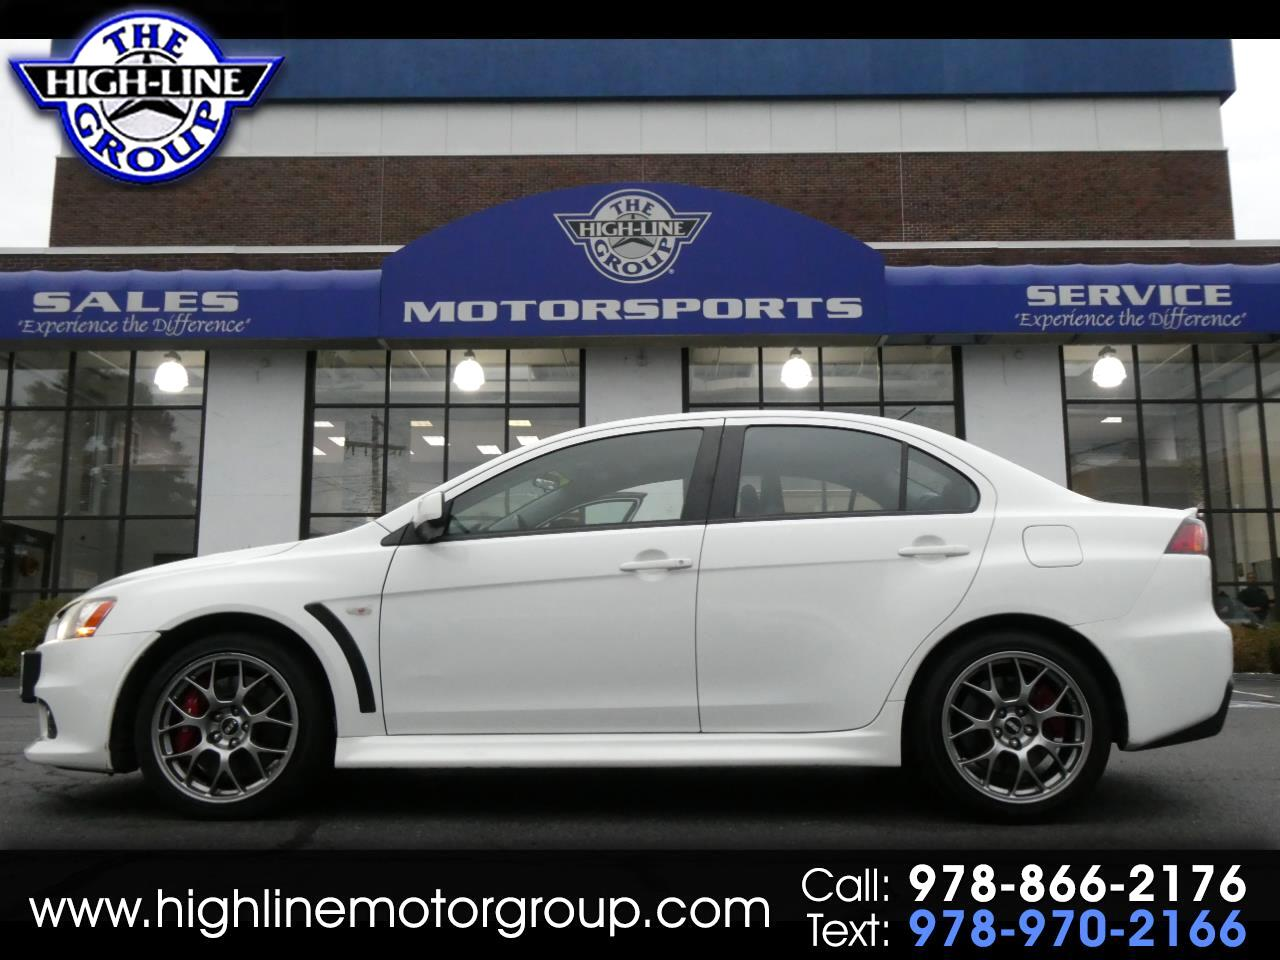 2011 Mitsubishi Lancer 4dr Sdn TC-SST Evolution MR AWD